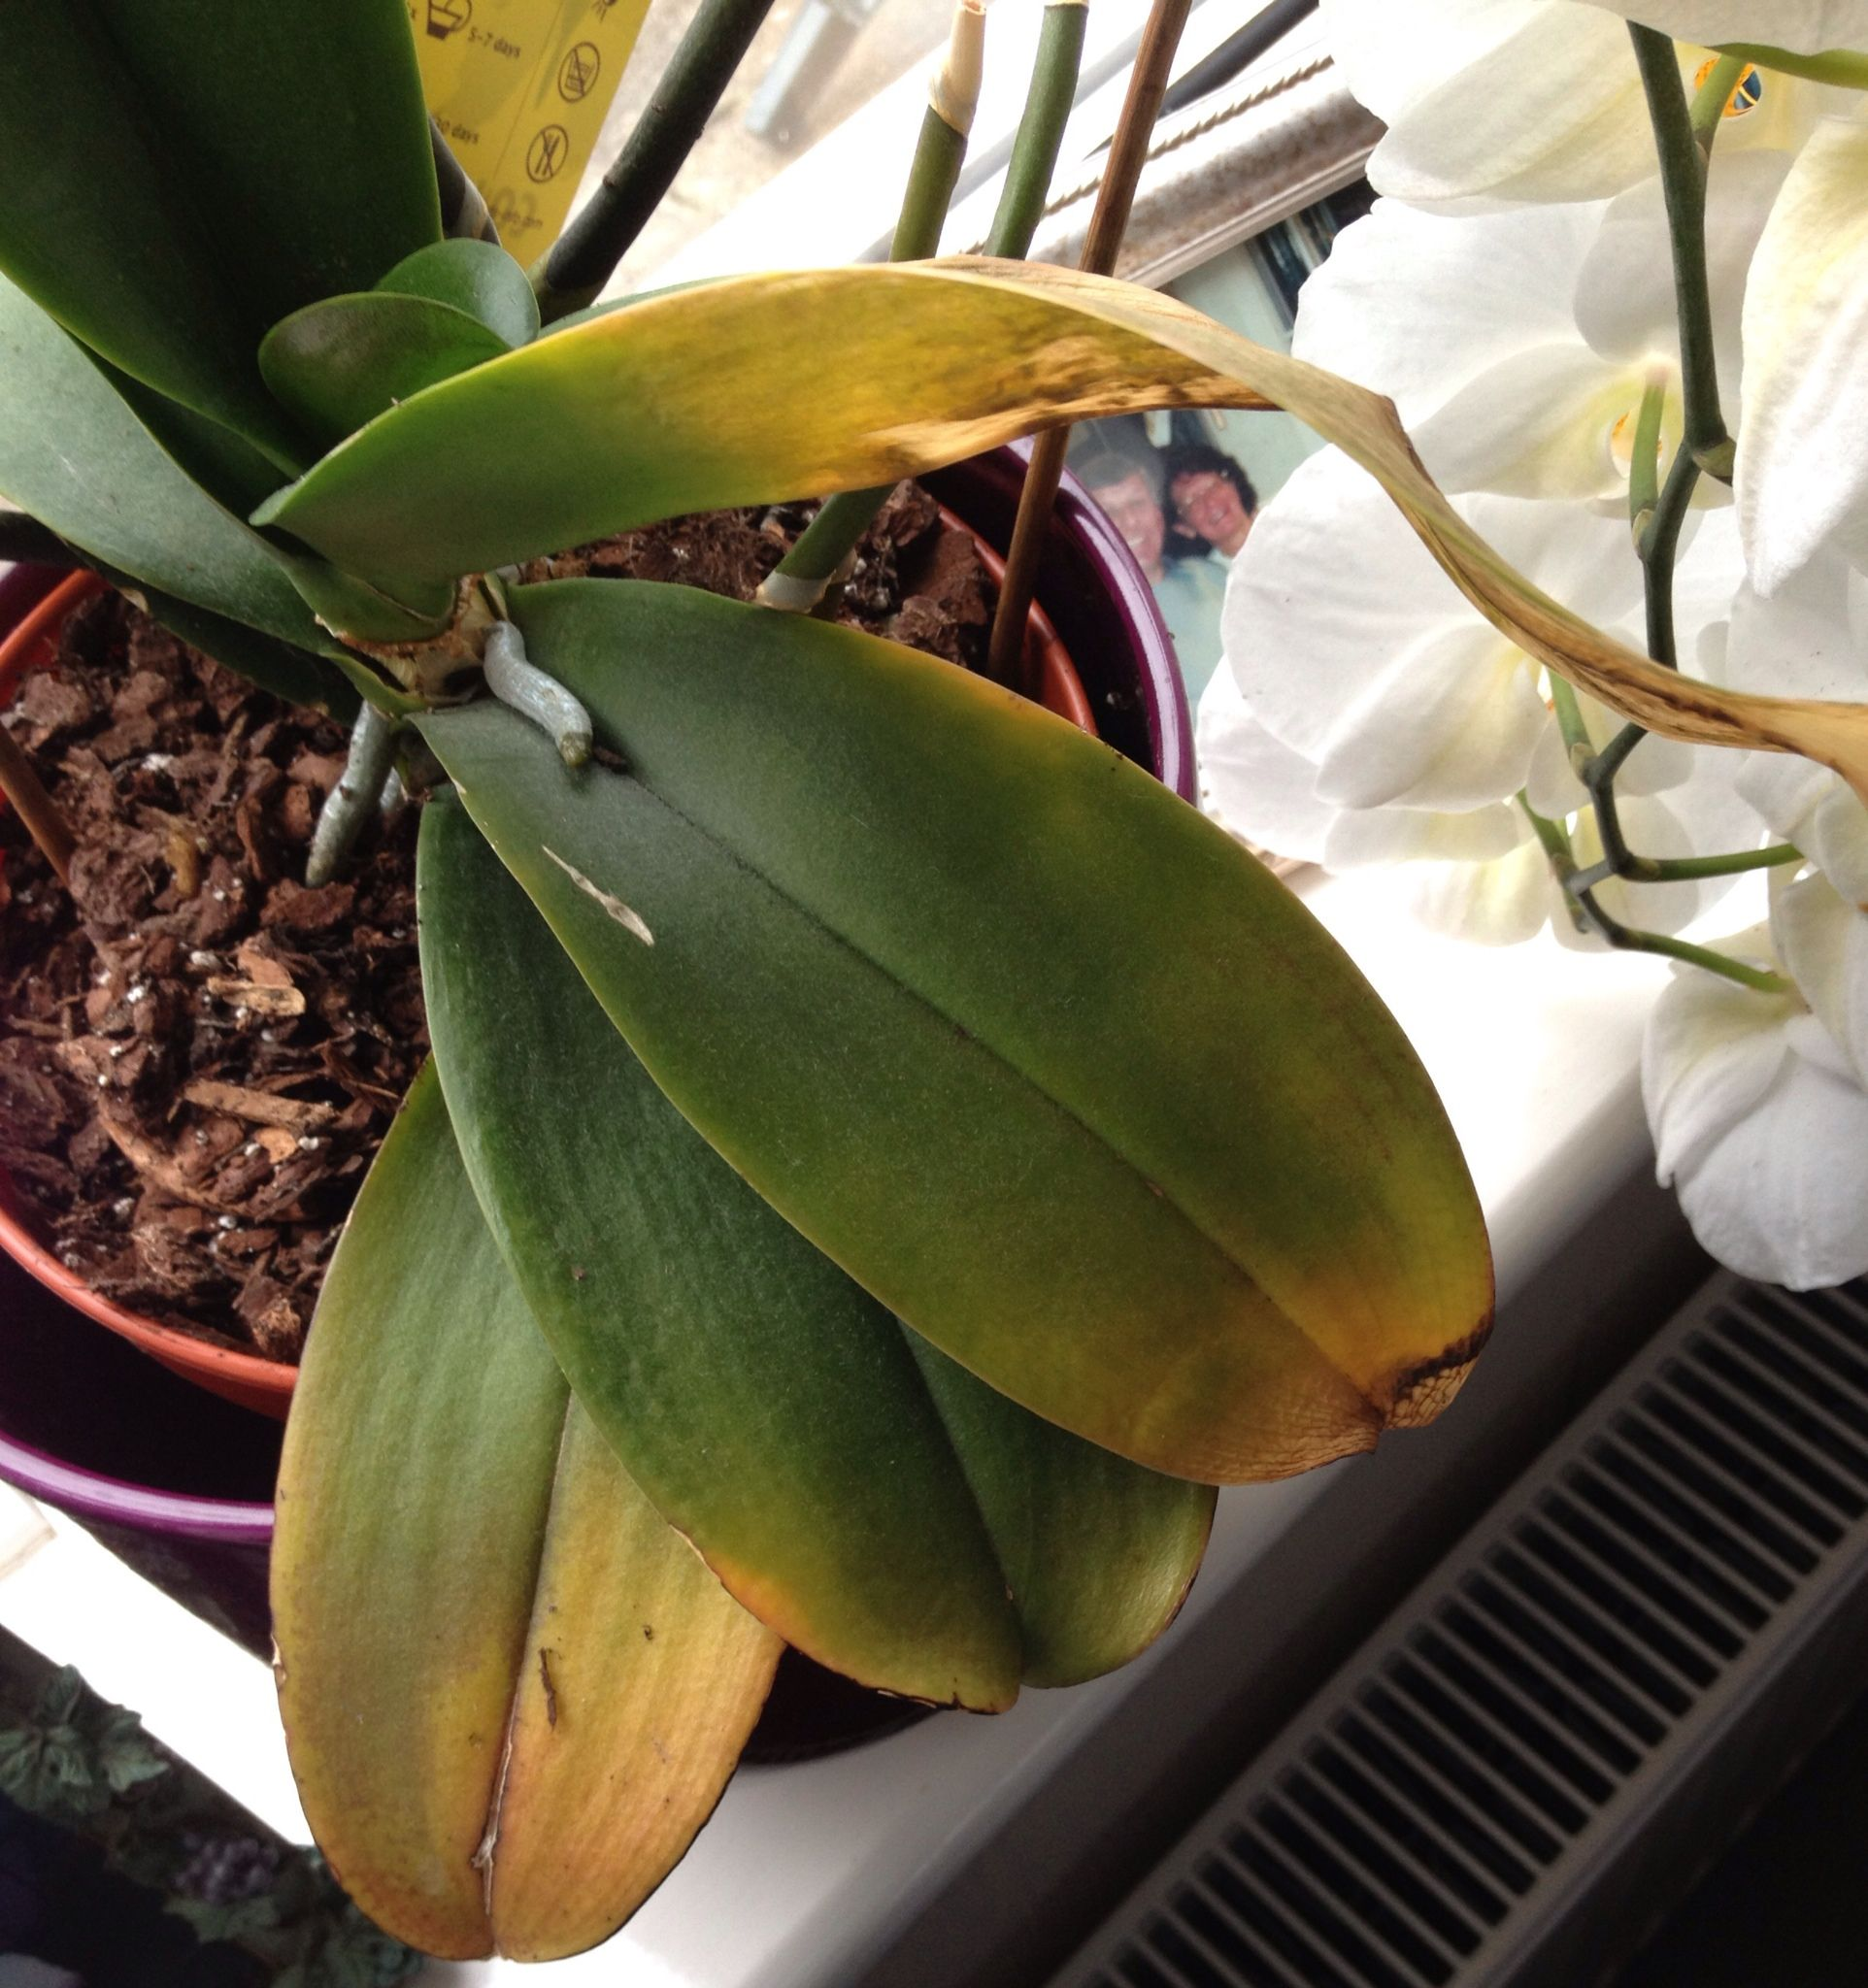 Help My Orchid Has Crown Root Rot What Should I Do Updated 12 11 17 Rot On Orchids Typically Ha Orchid Leaves Orchid Leaves Turning Yellow Repotting Orchids